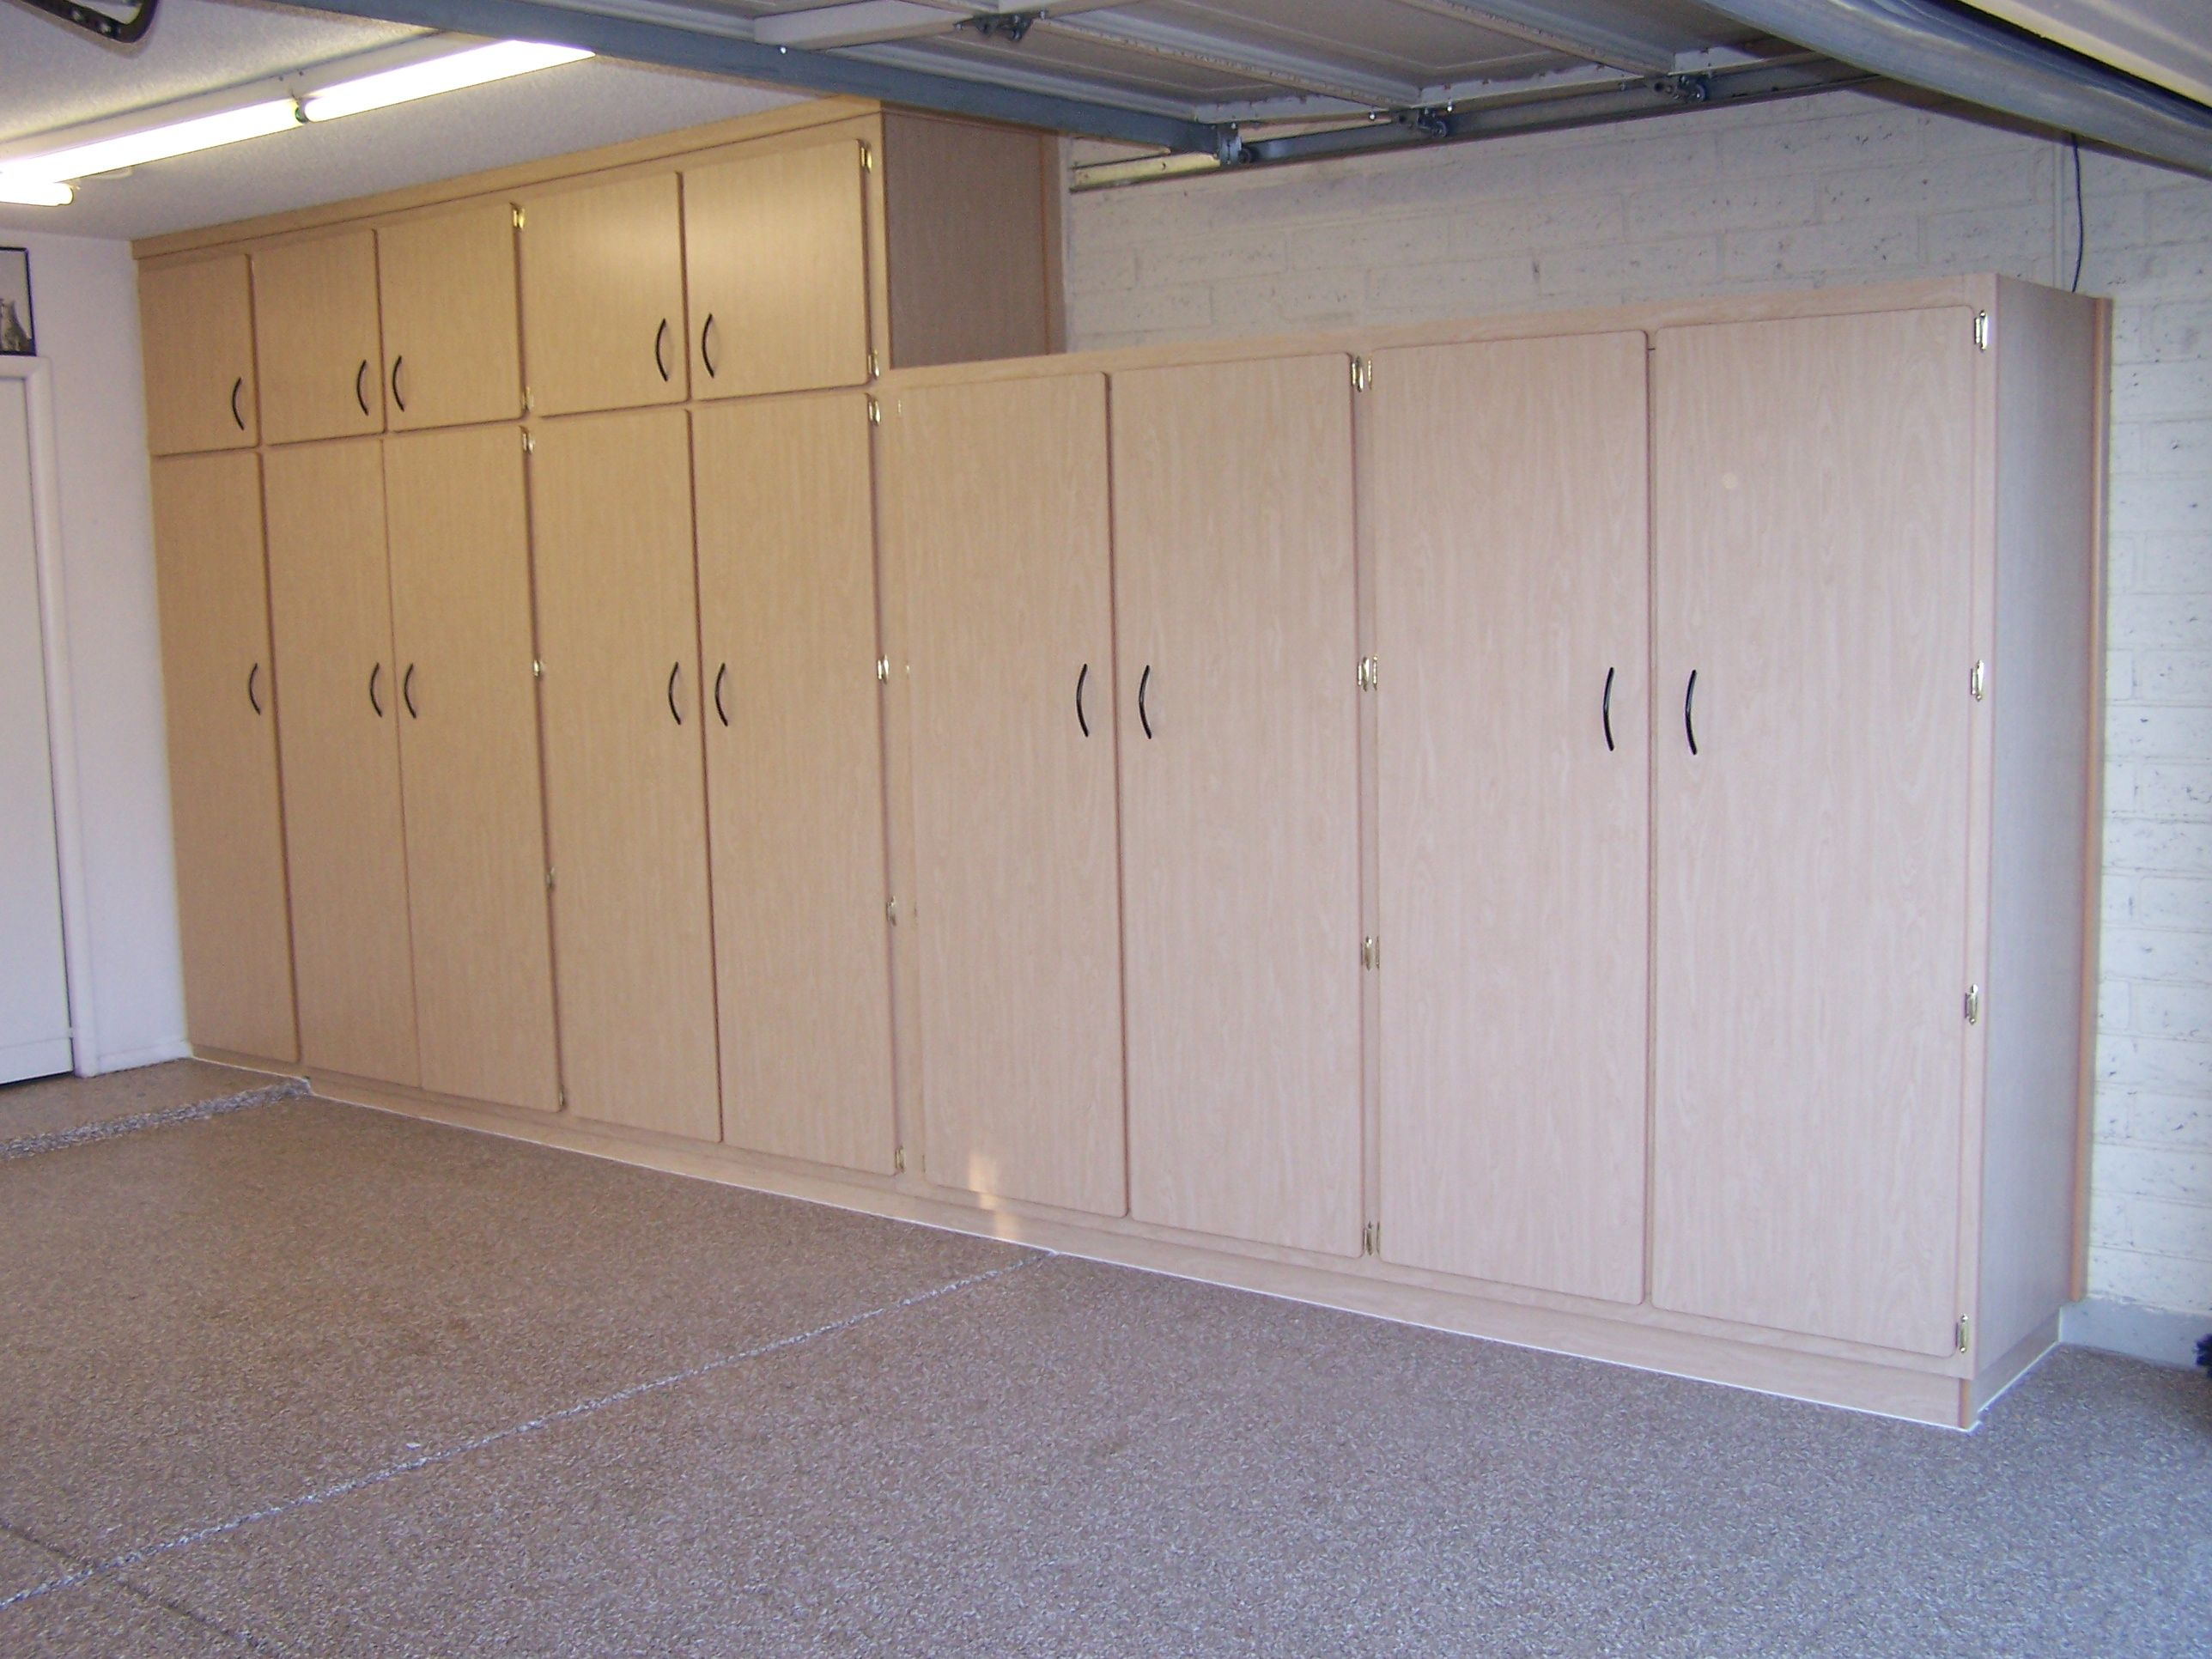 Exceptionnel Garage Storage Cabinets With Doors